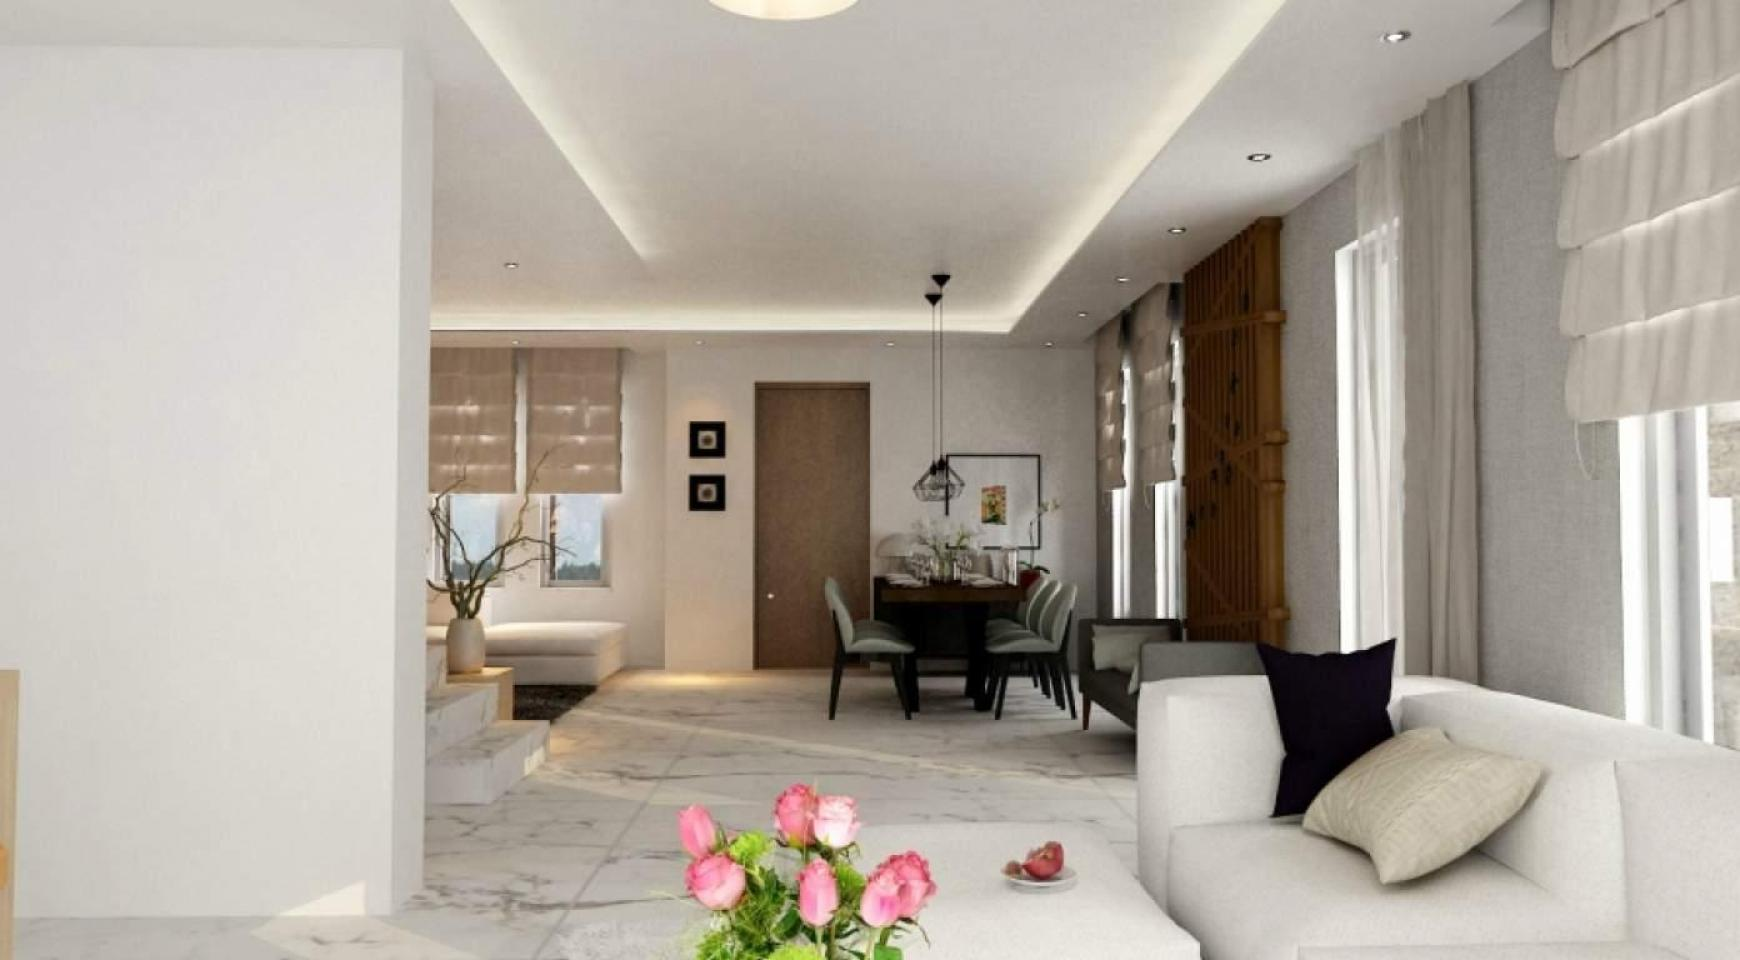 4 Bedroom House in Leivadia Area - 10